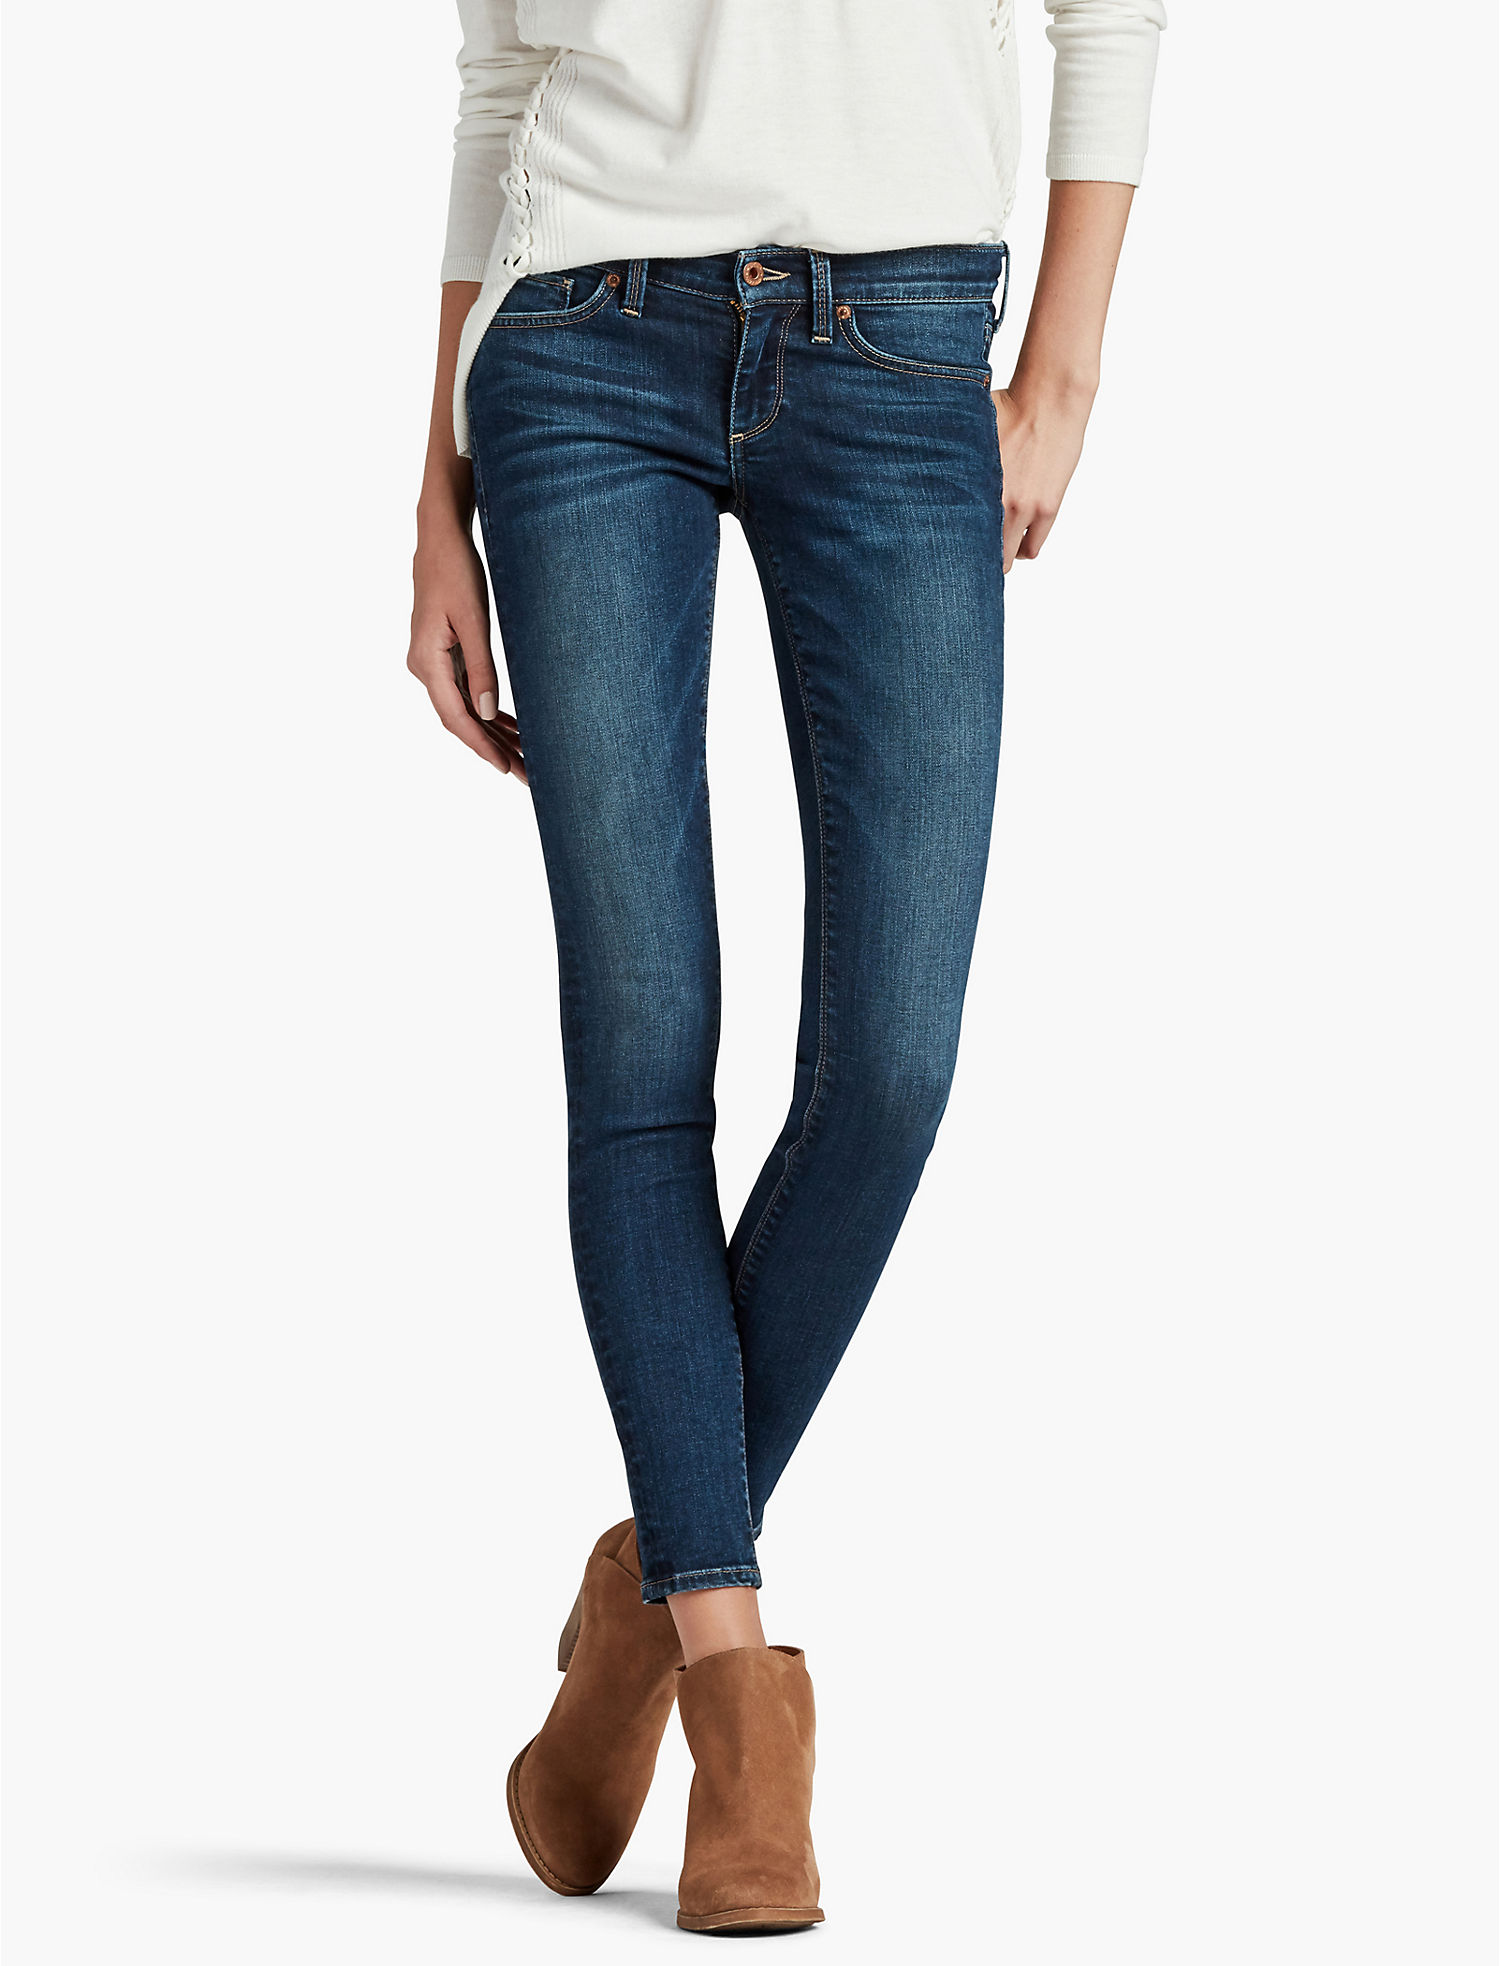 Cheap Extra Long Jeans For Women